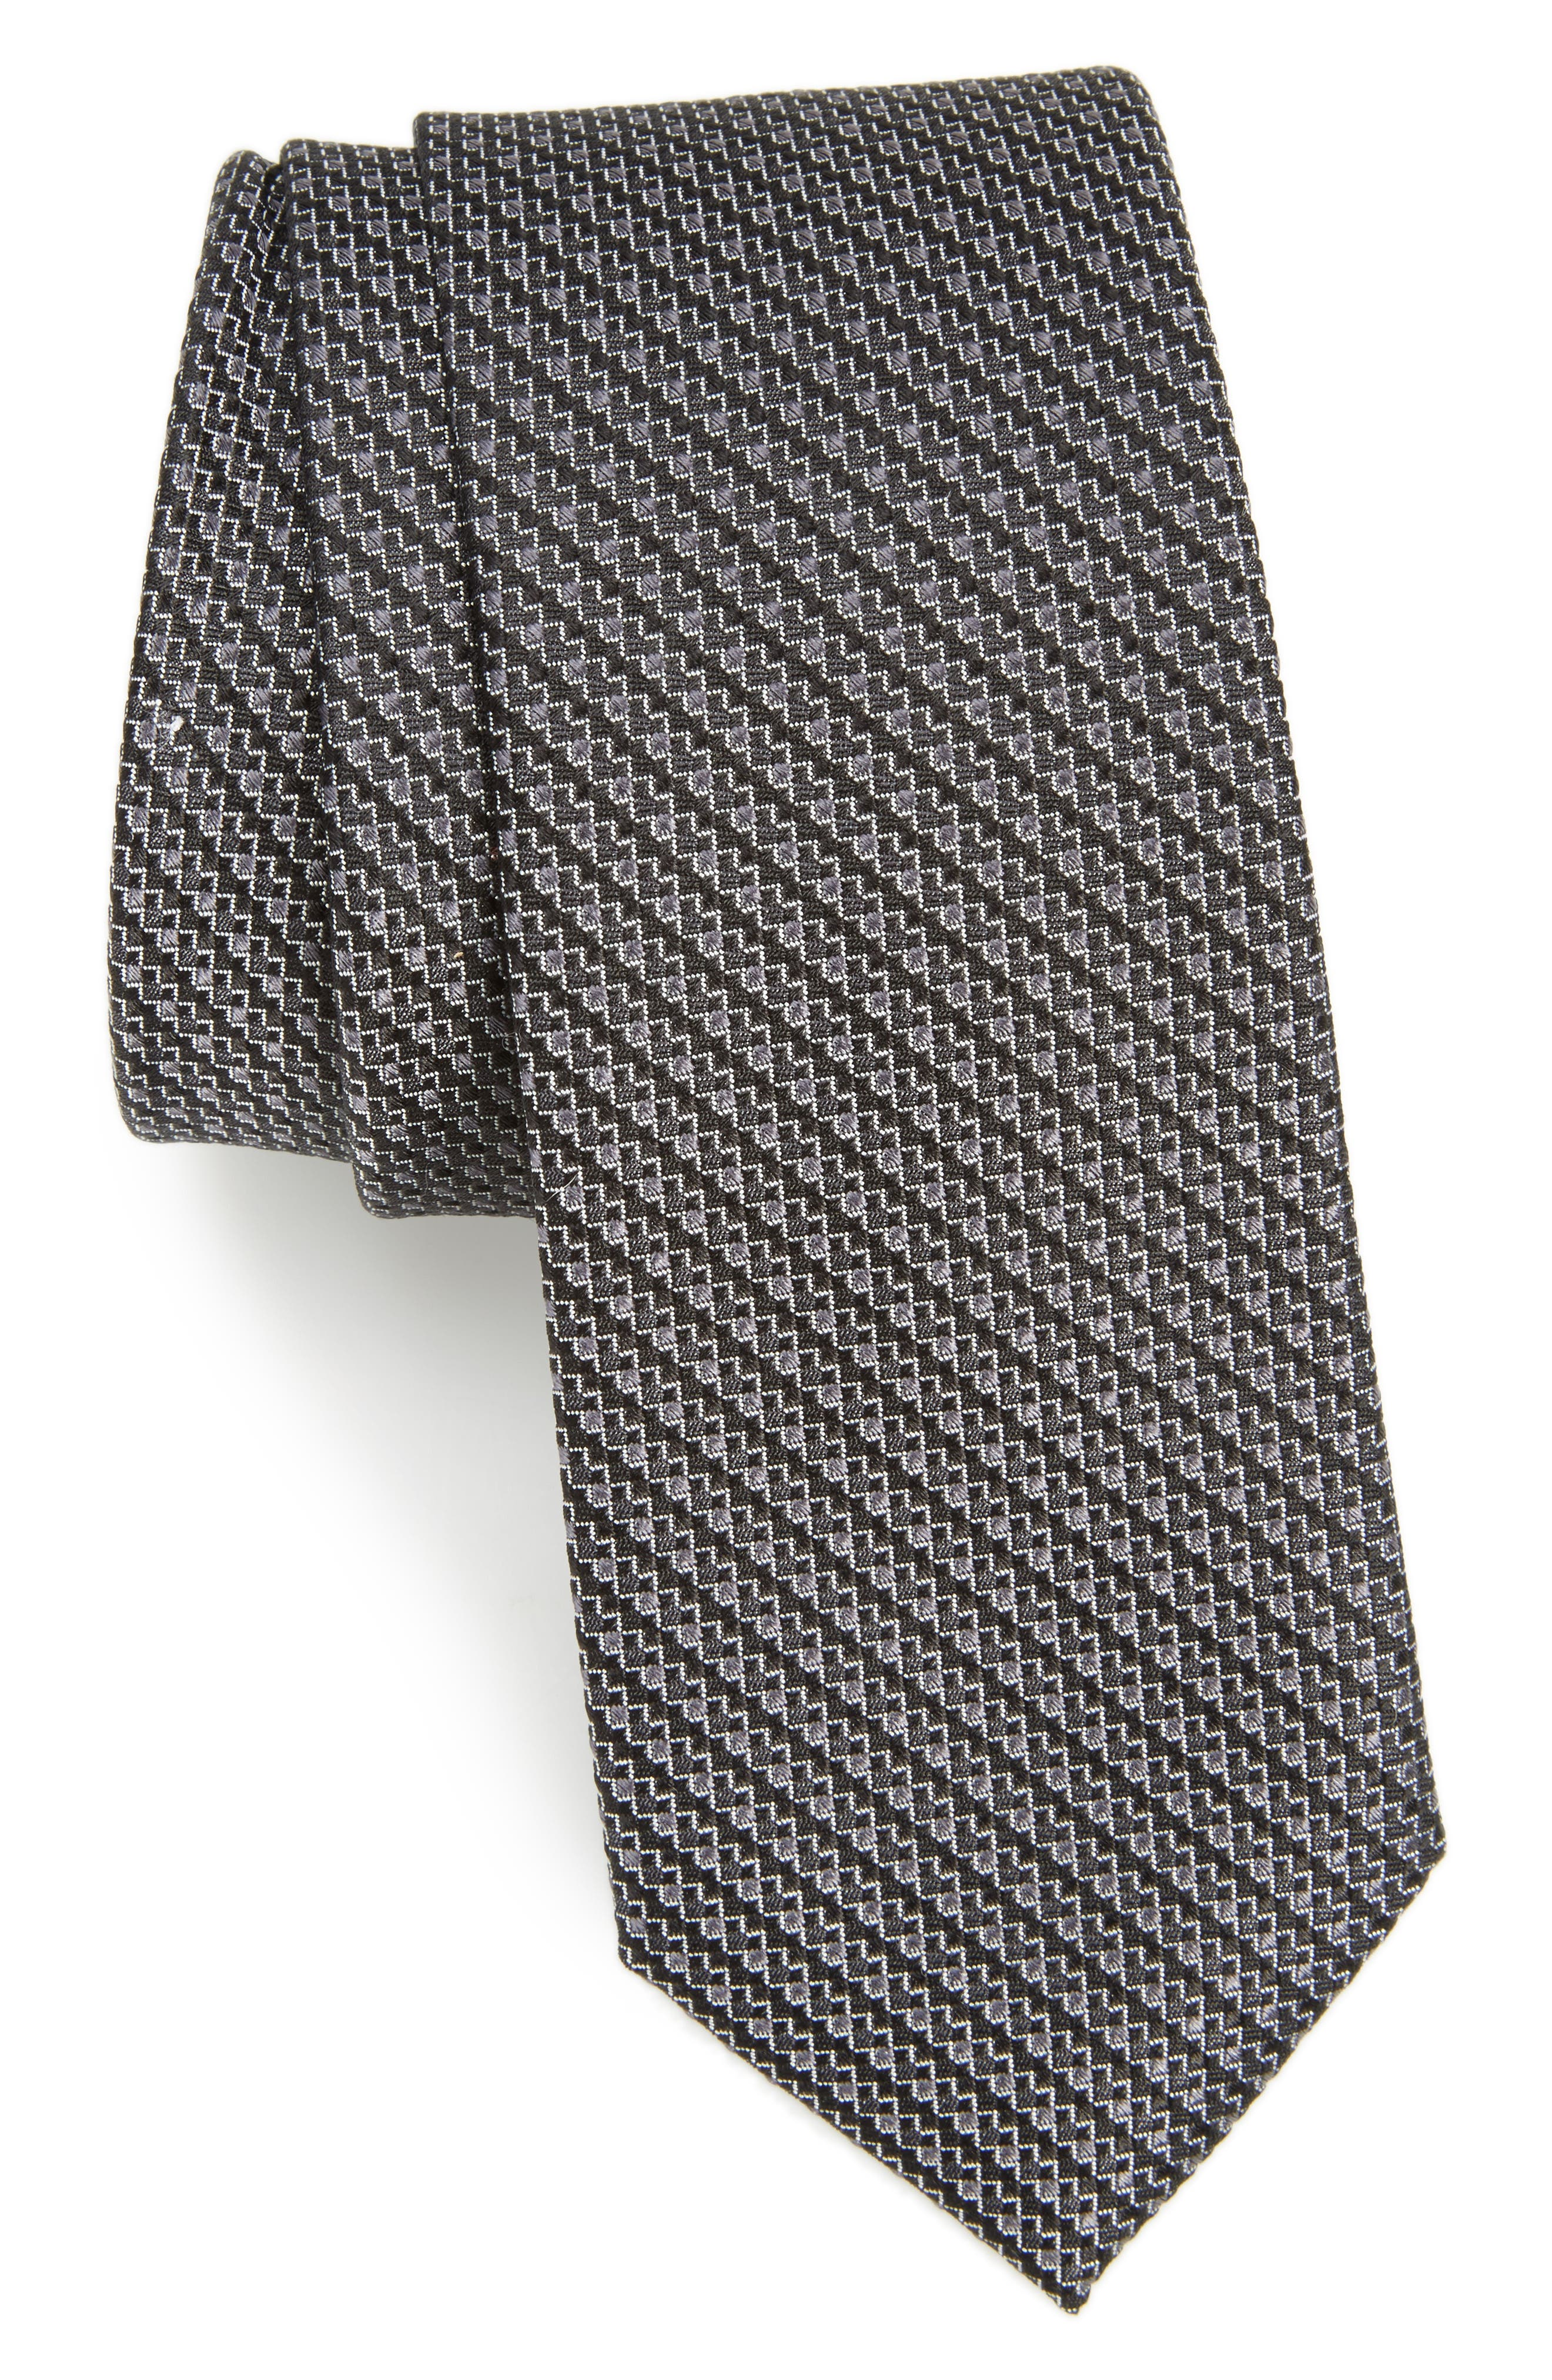 CALIBRATE Stellar Textured Silk Tie